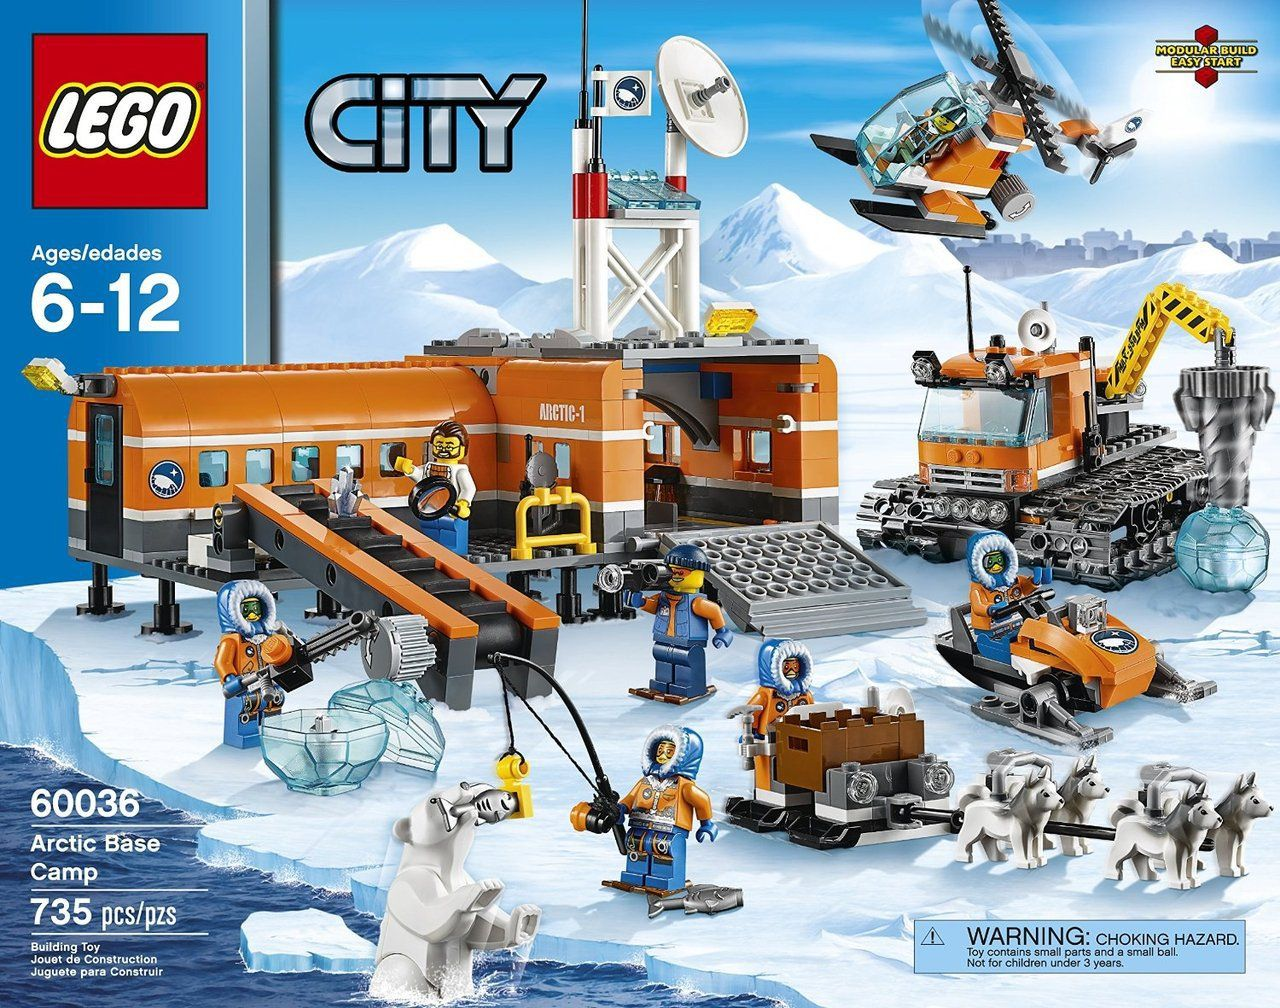 Pin lego 60032 city the lego summer wave in official images on - Lego City Arctic Basecamp 60036 Discount Toys Usa